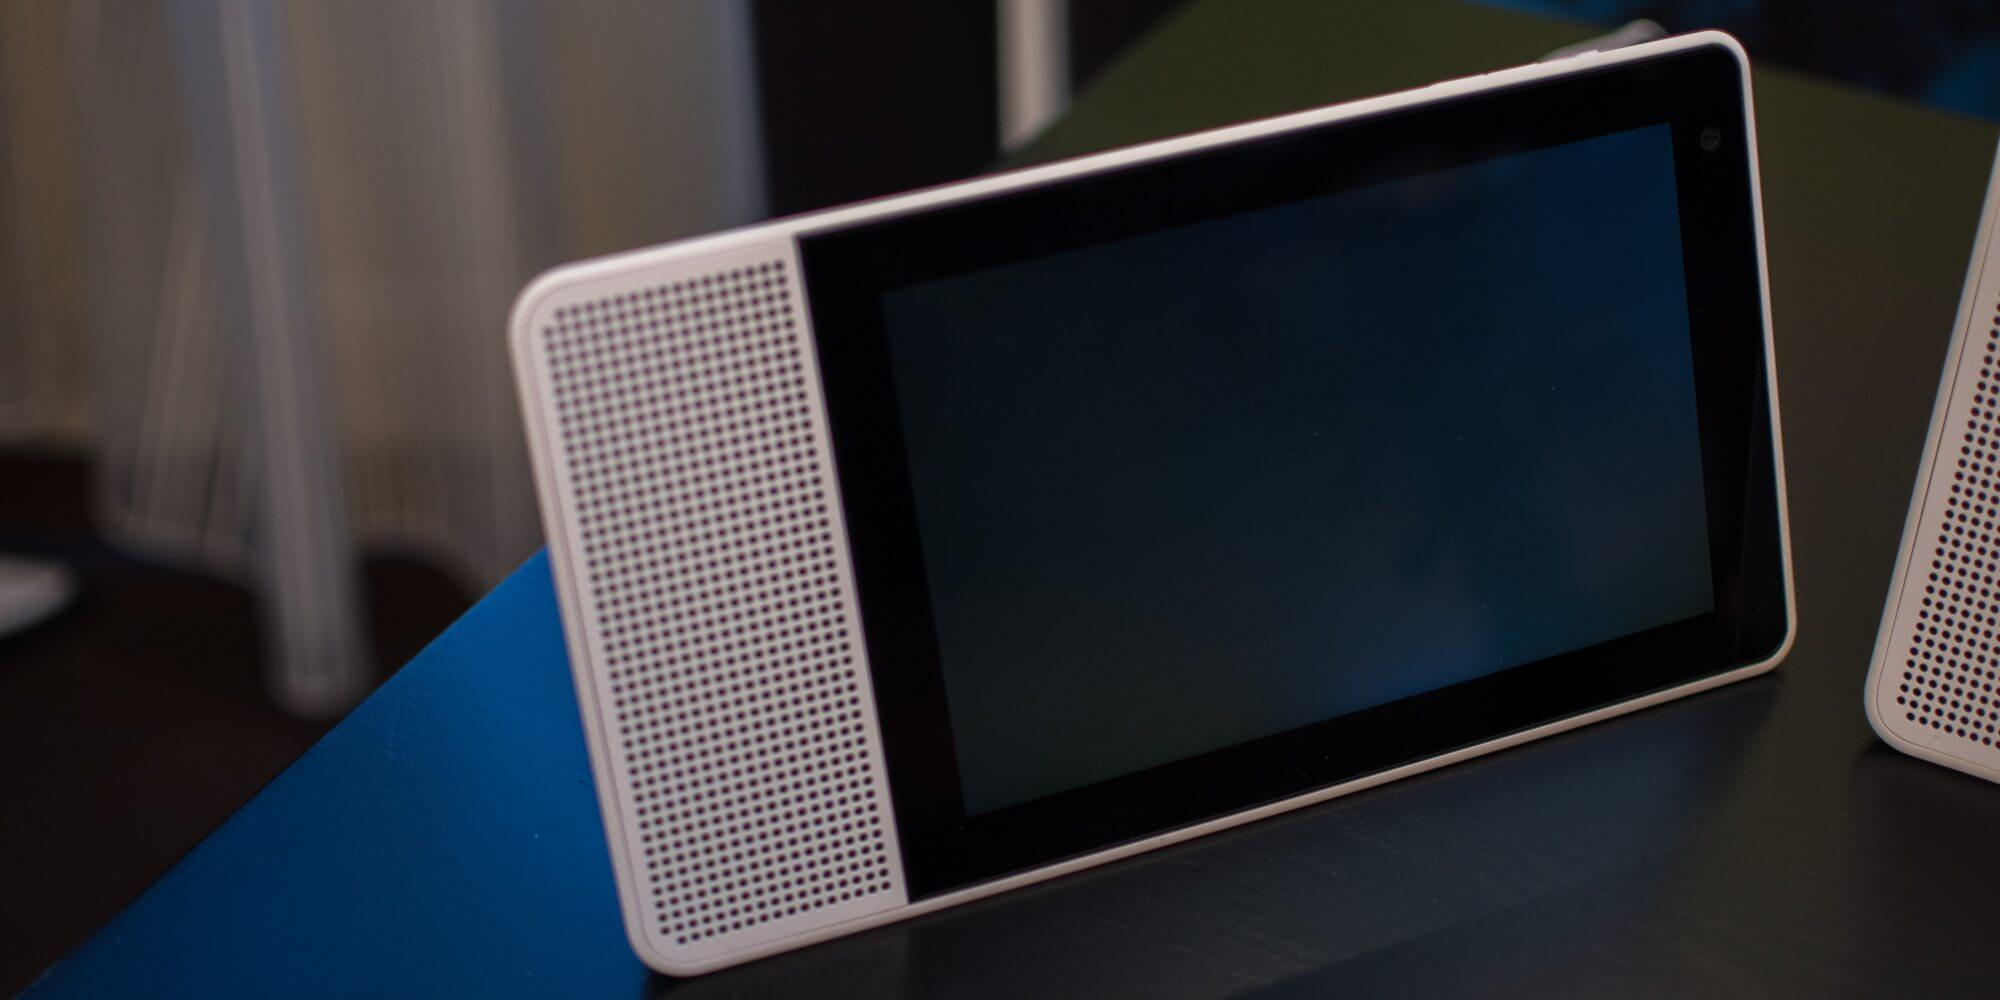 Lenovo Smart Display Google Assistant